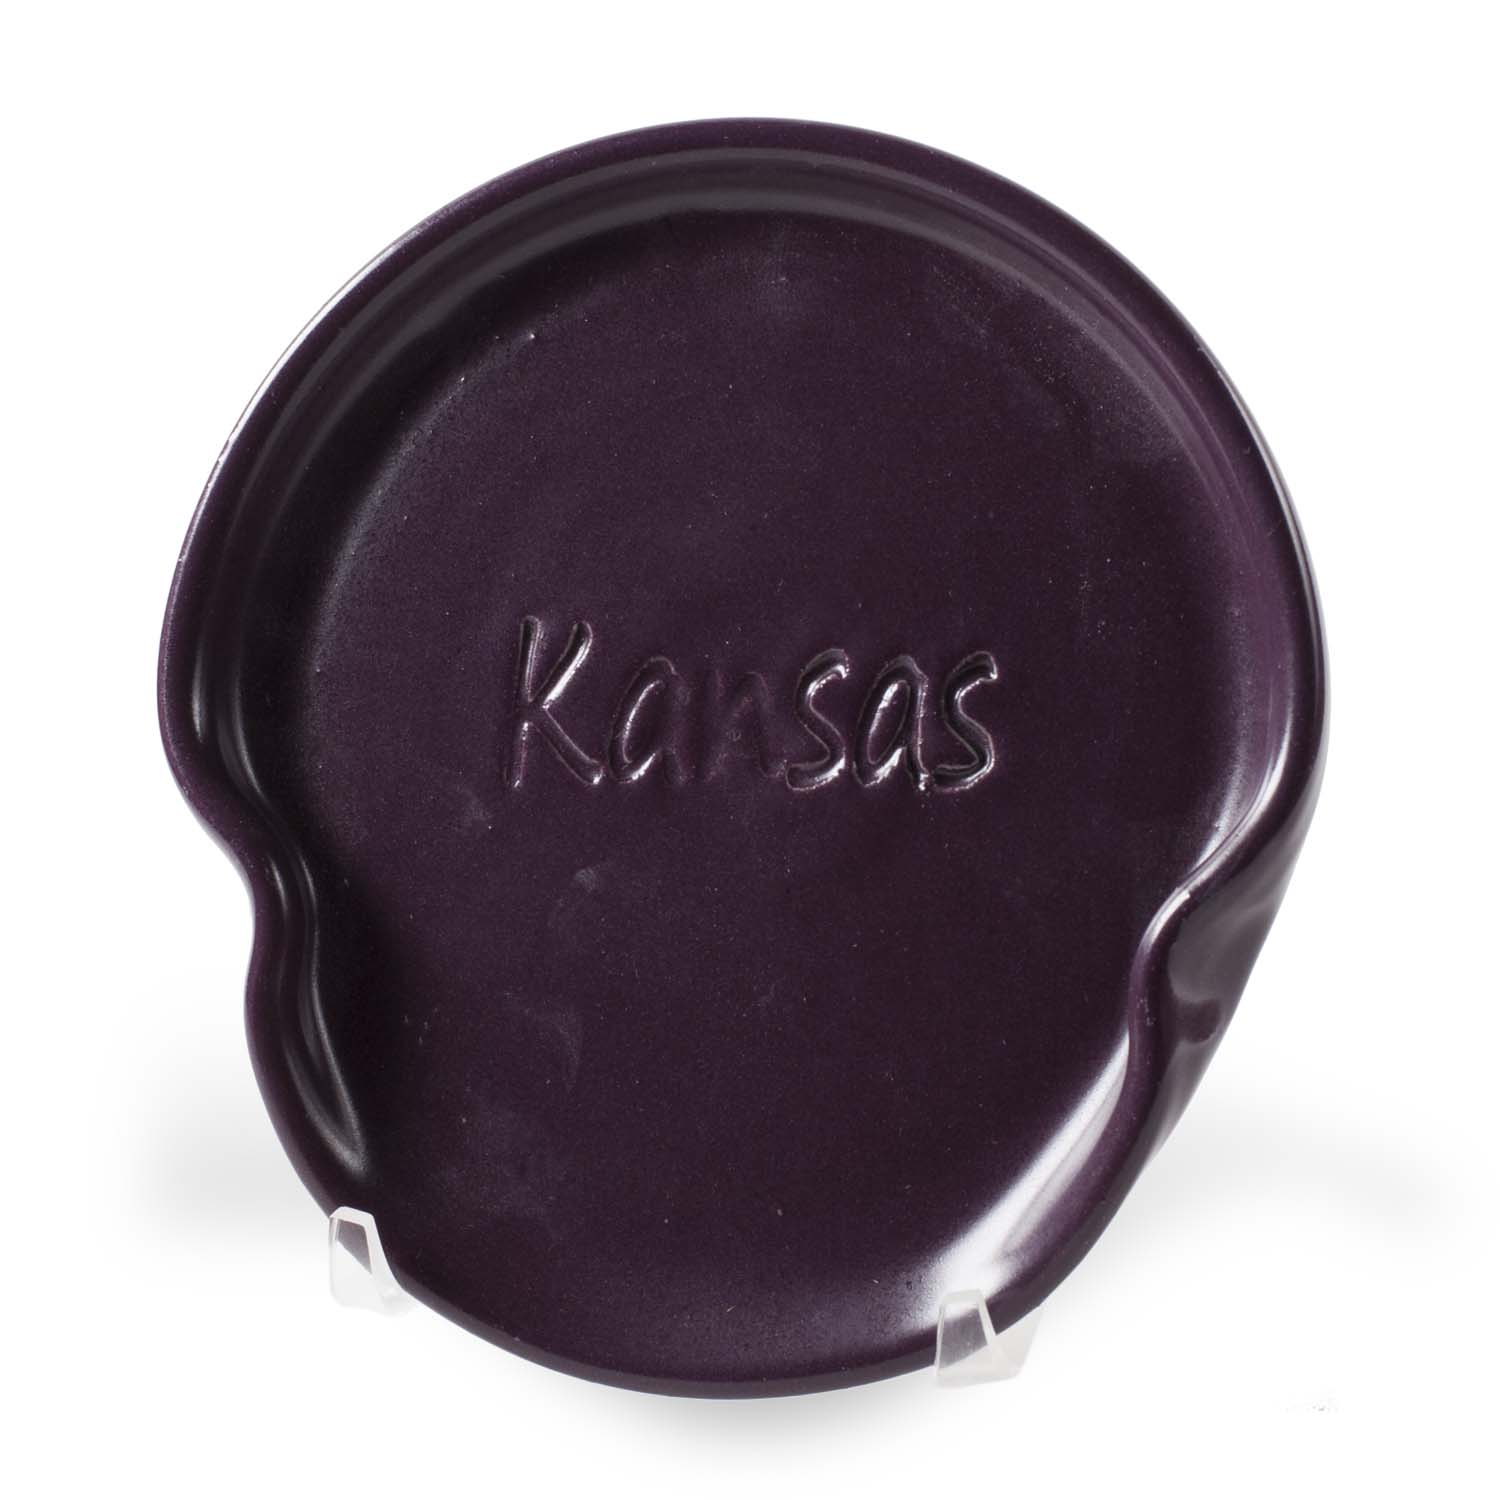 Kansas Spoon Rest